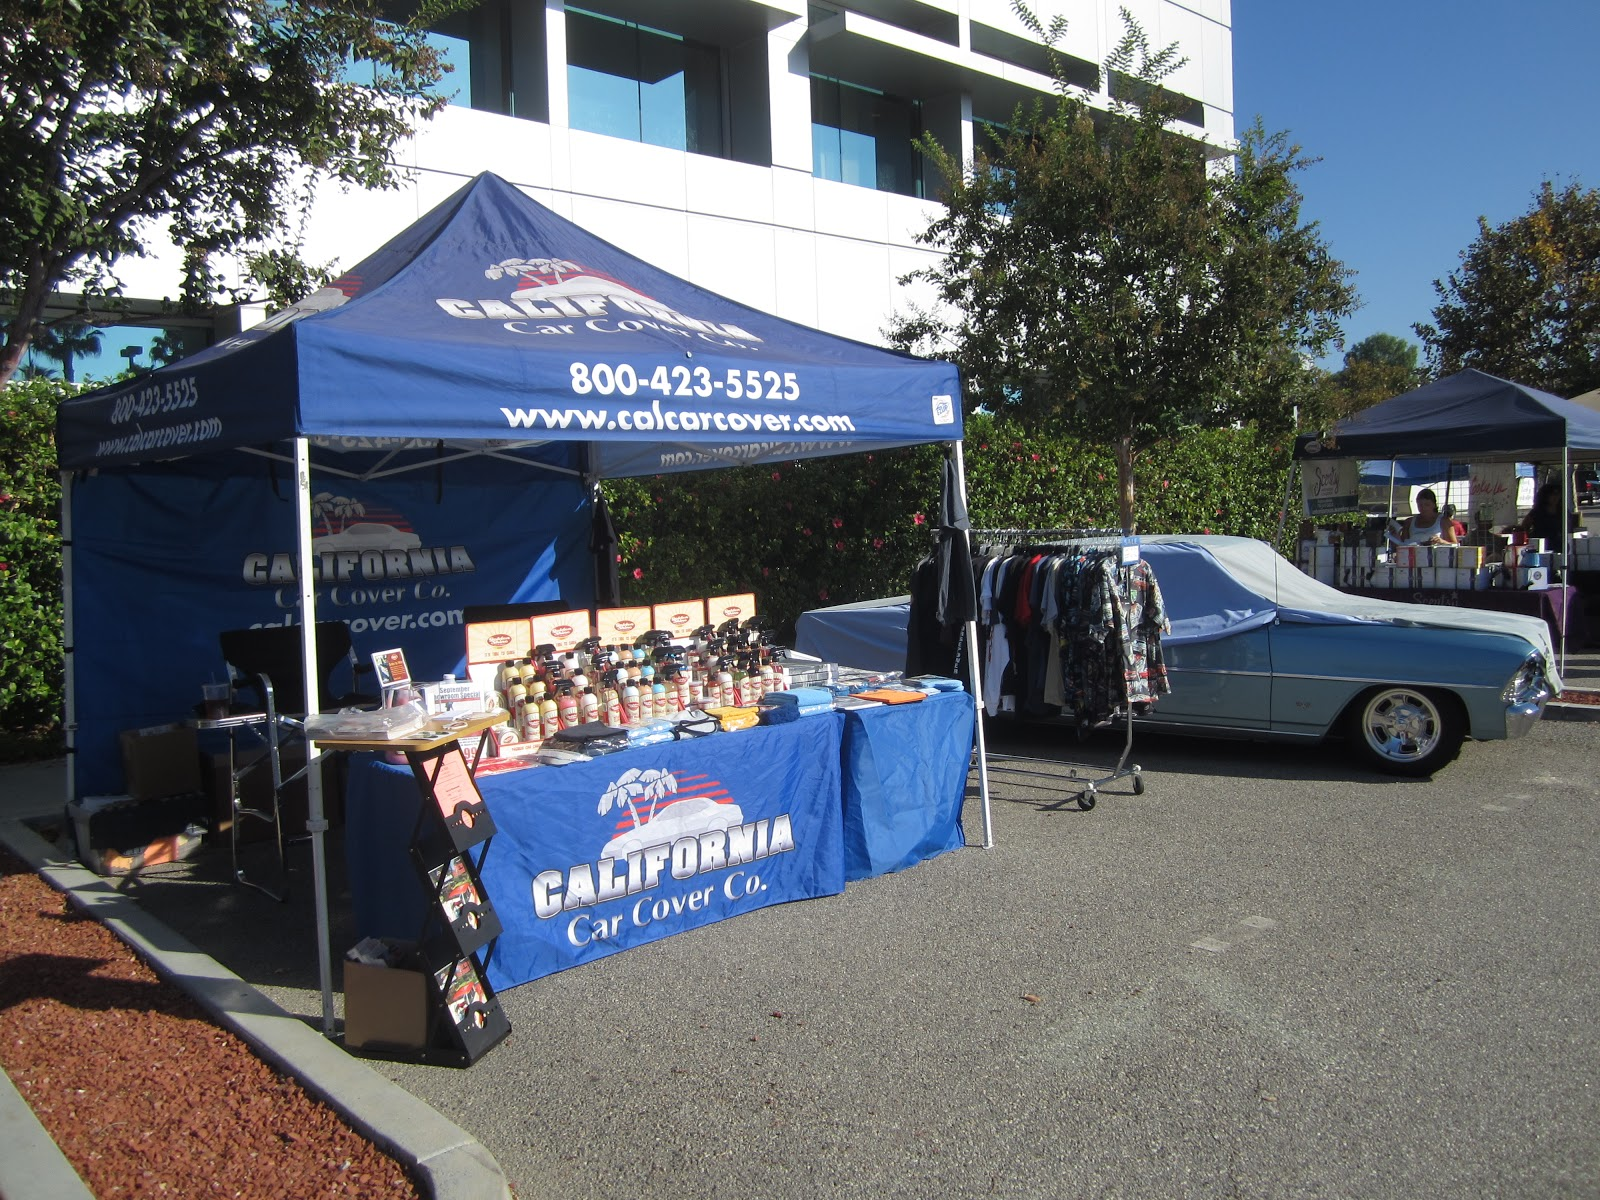 Covering Classic Cars LAFD Charity Car Show West Hills Ca - Car show booth